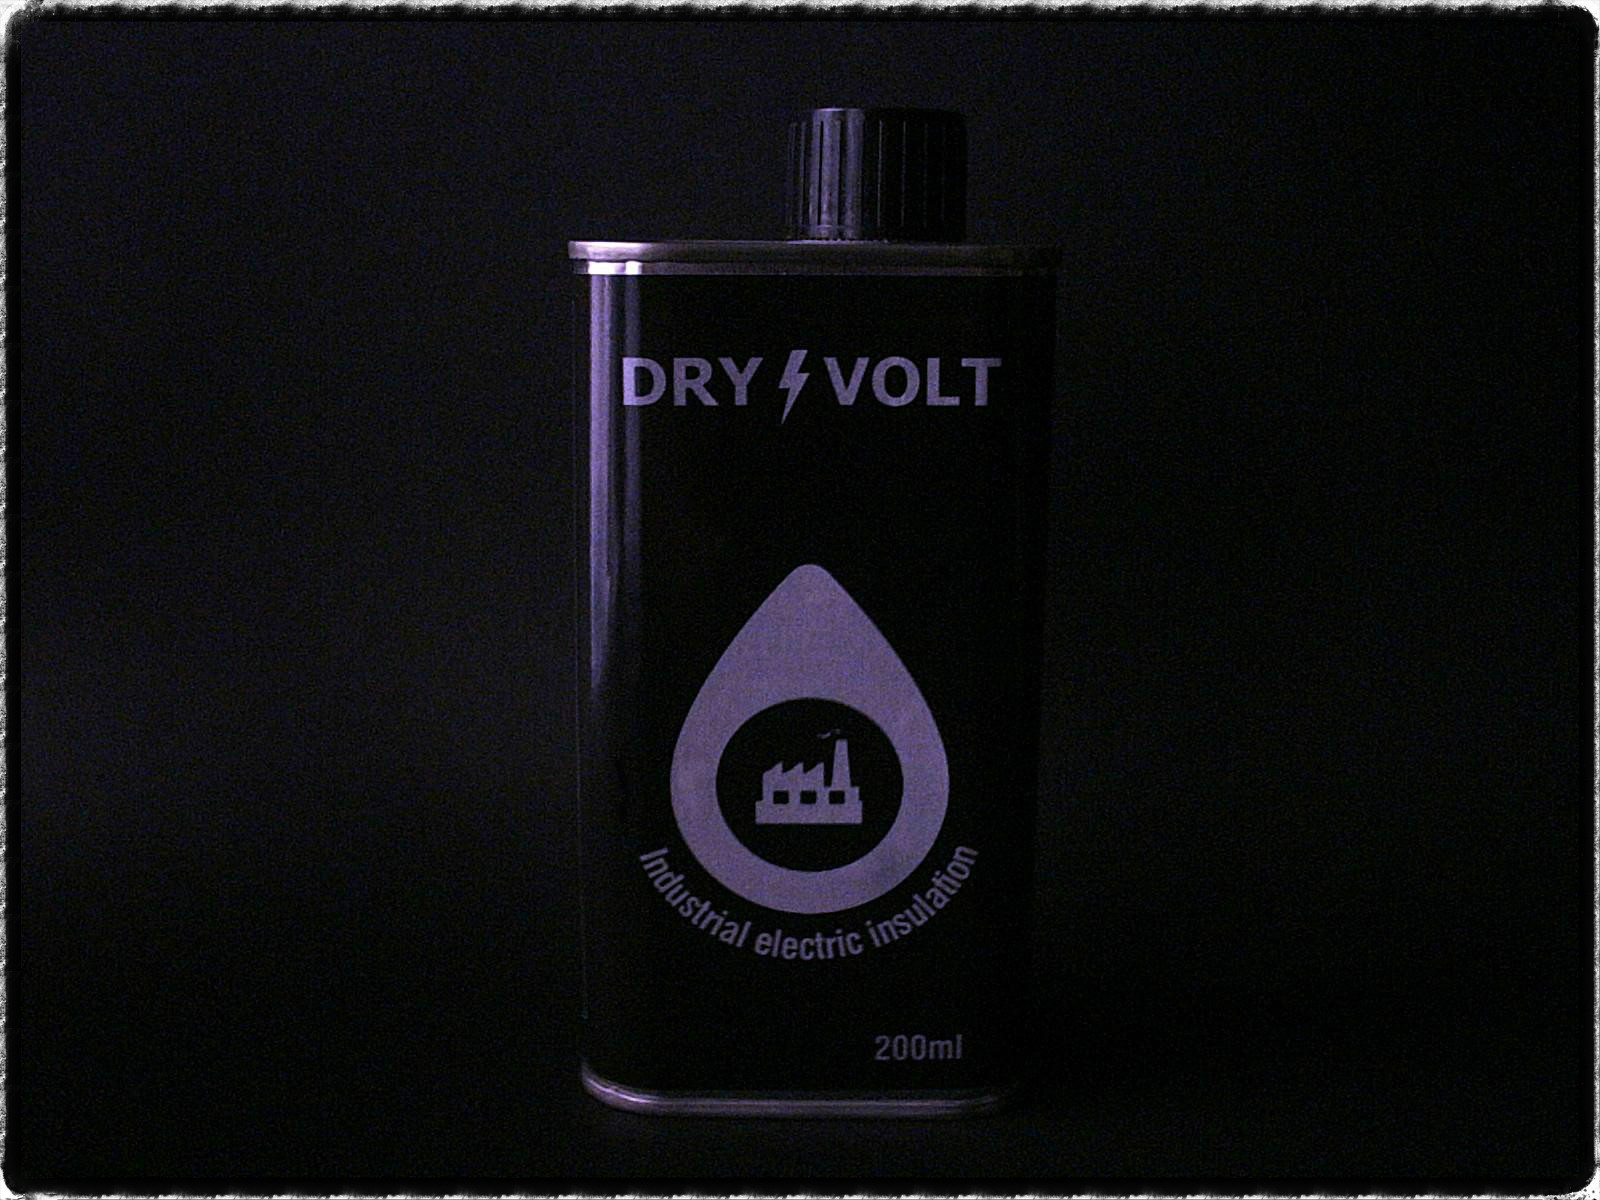 DRY VOLT Industrial electric insulation 200ml